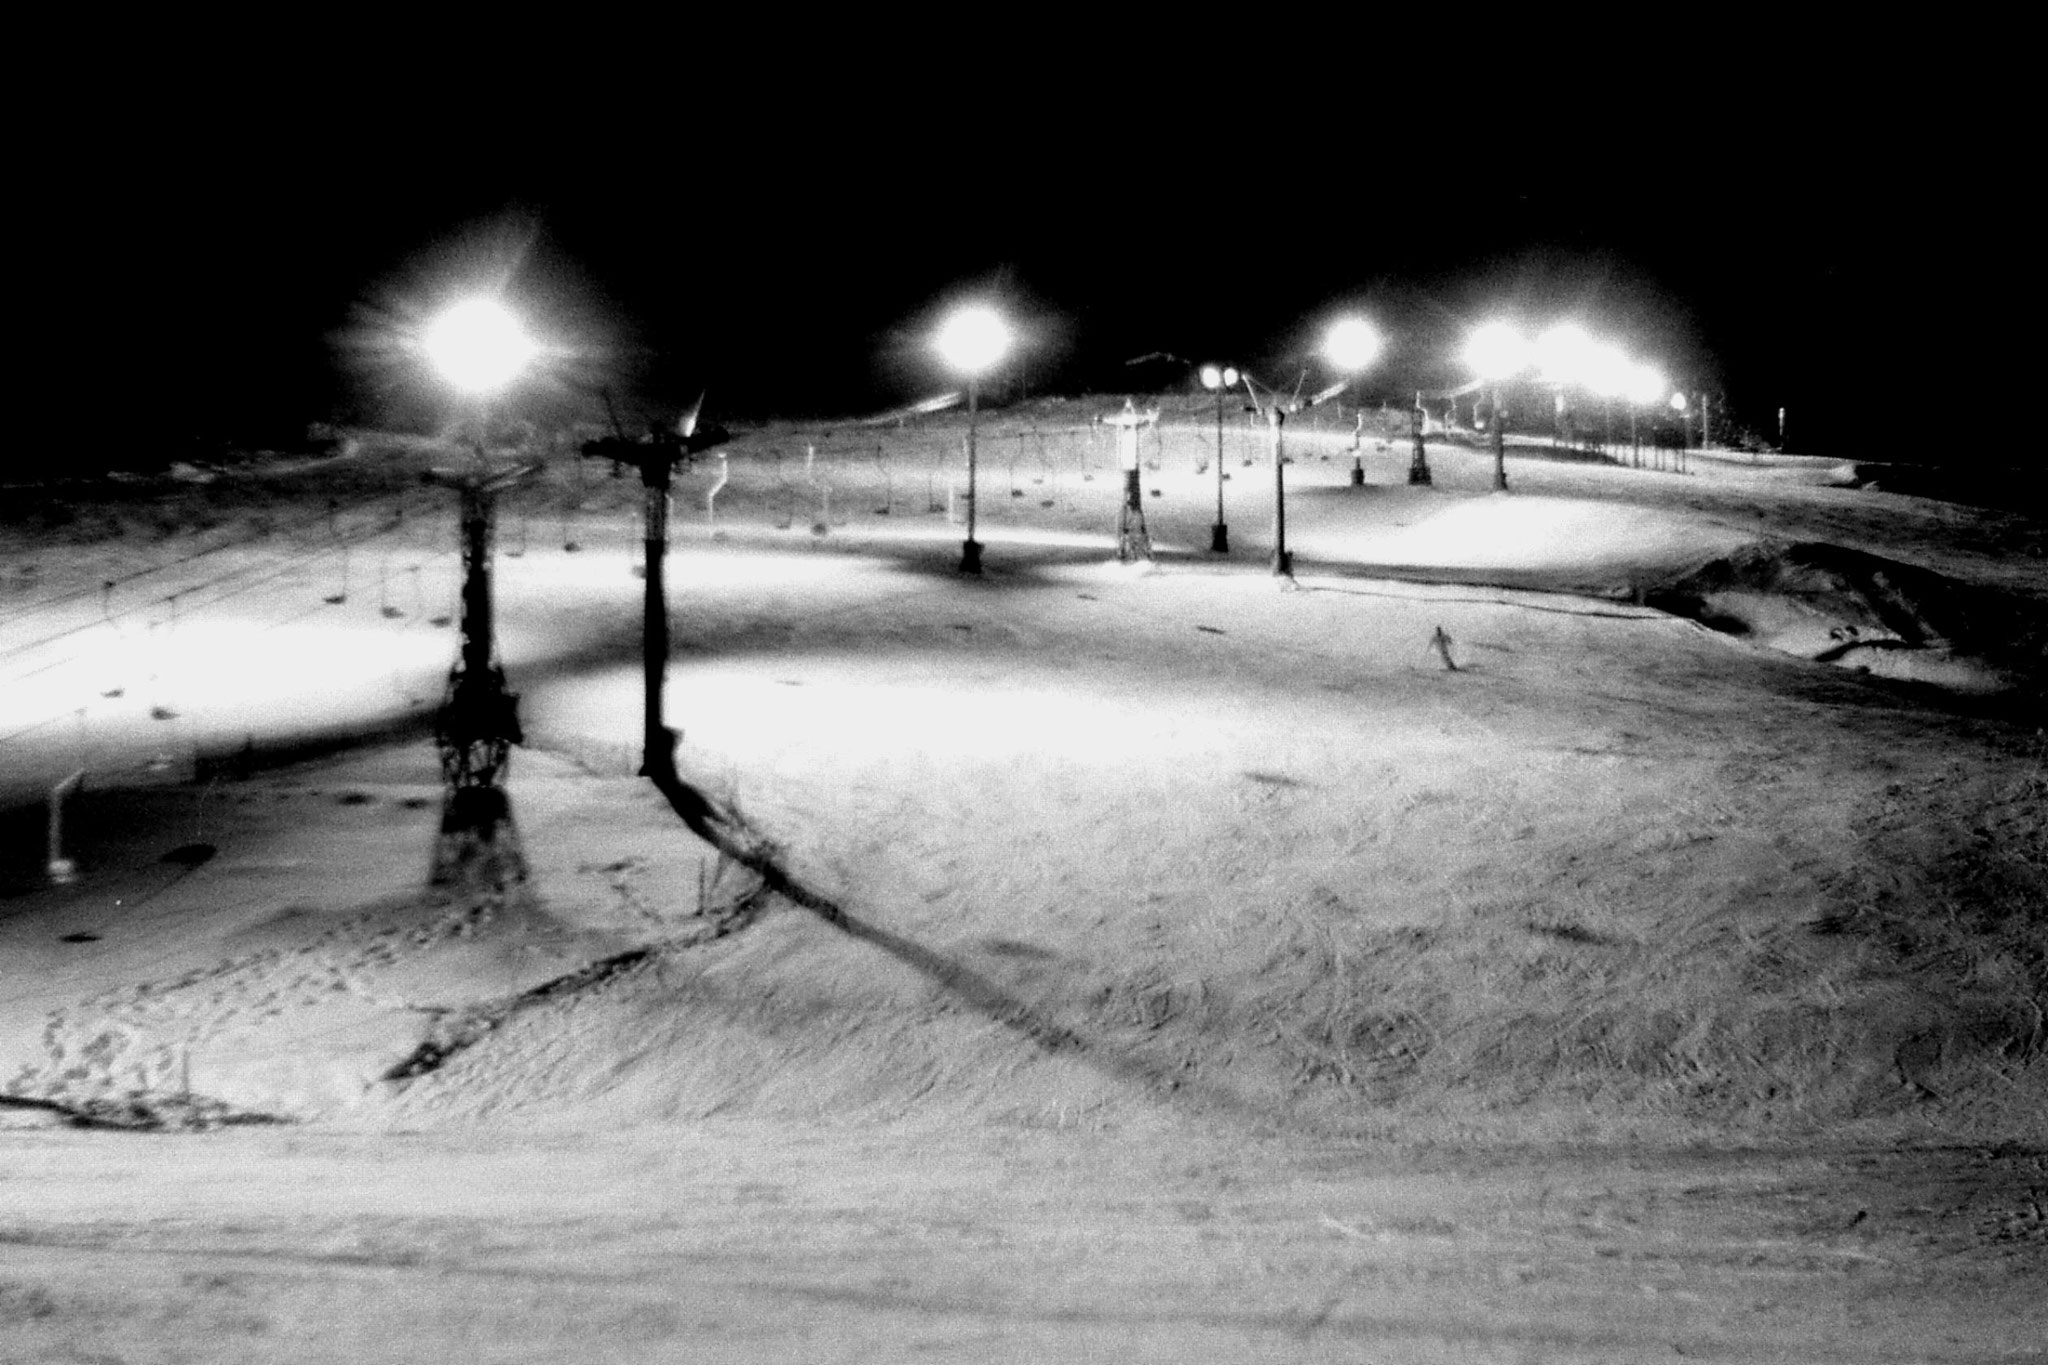 11/1/1989: 4: Floodlit ski slope outside hostel at Asahigawa